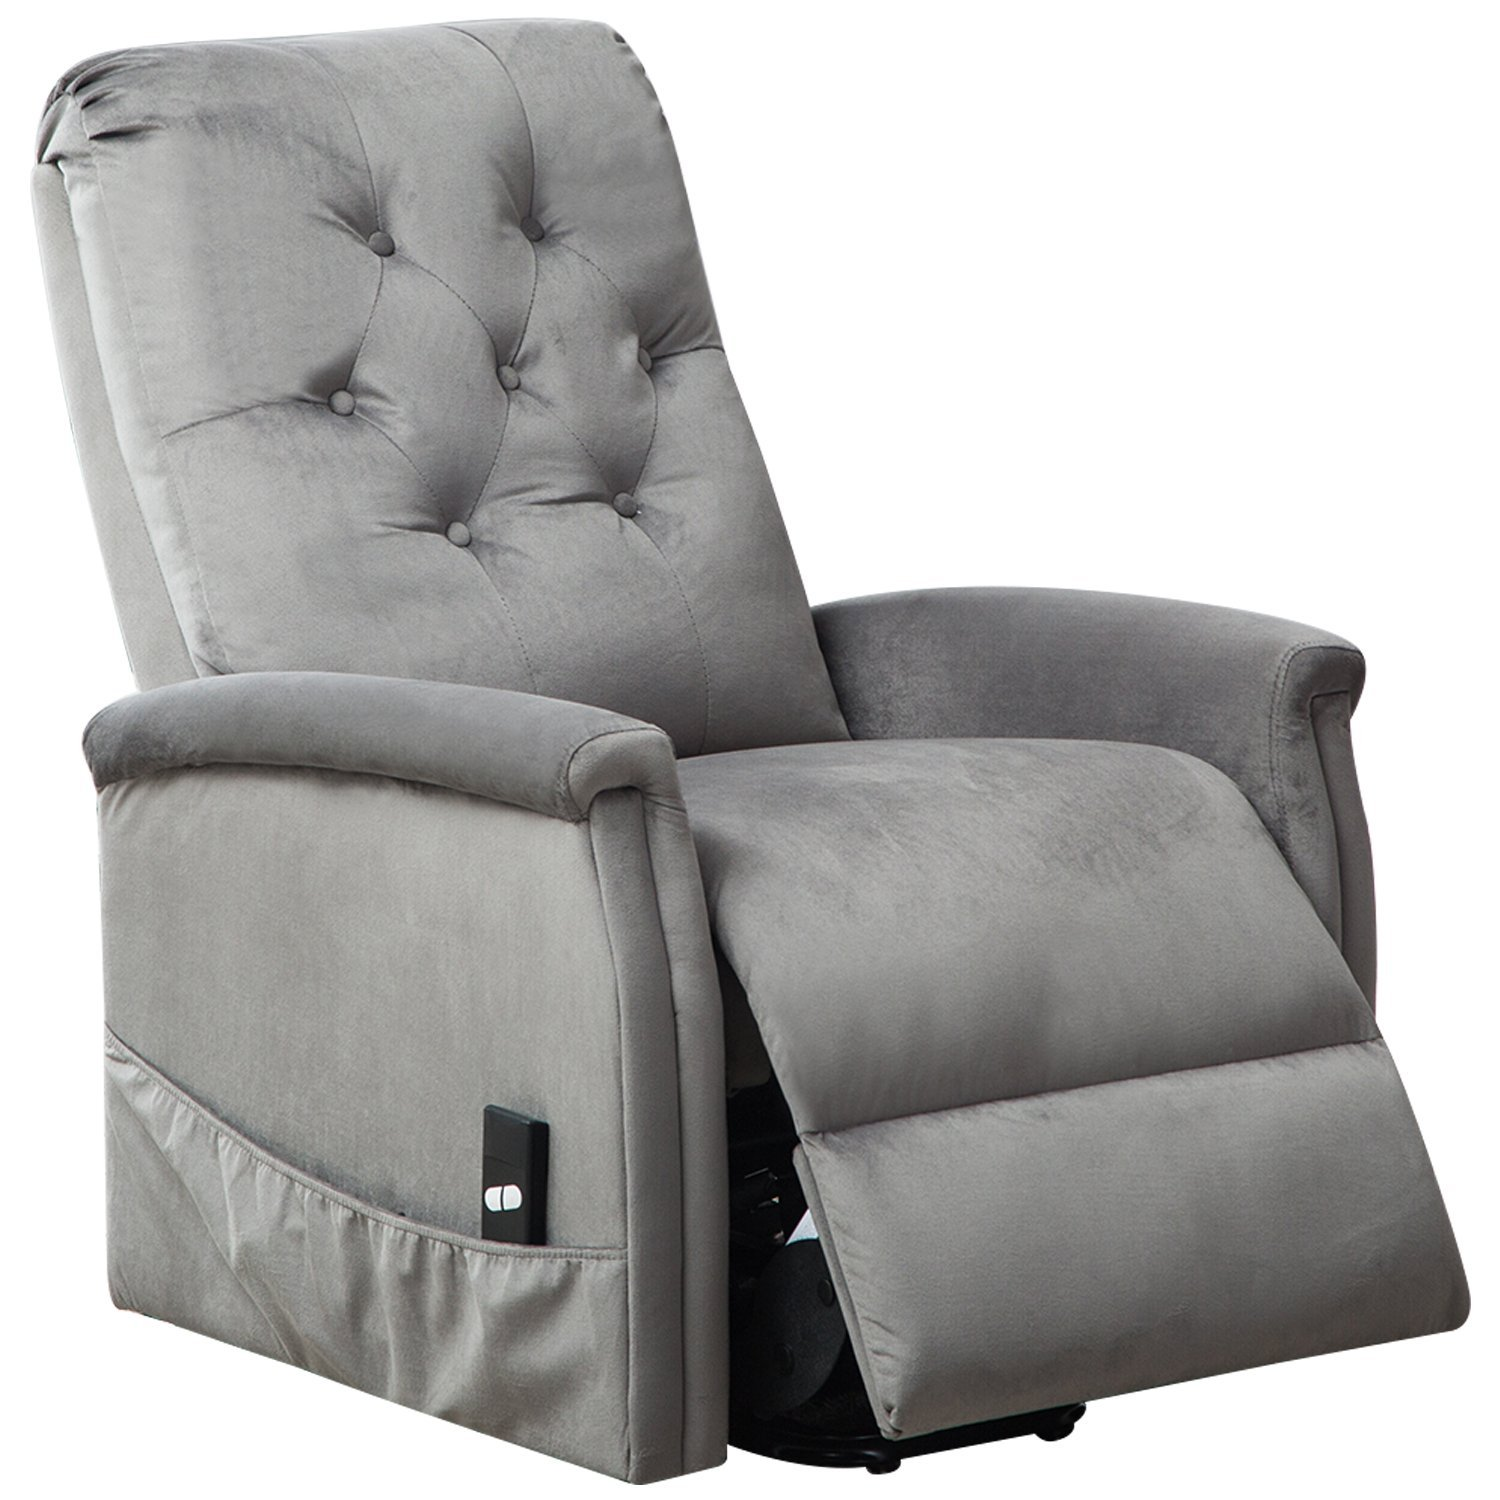 BONZY Power Lift Chair Tufted Recliners Living Room